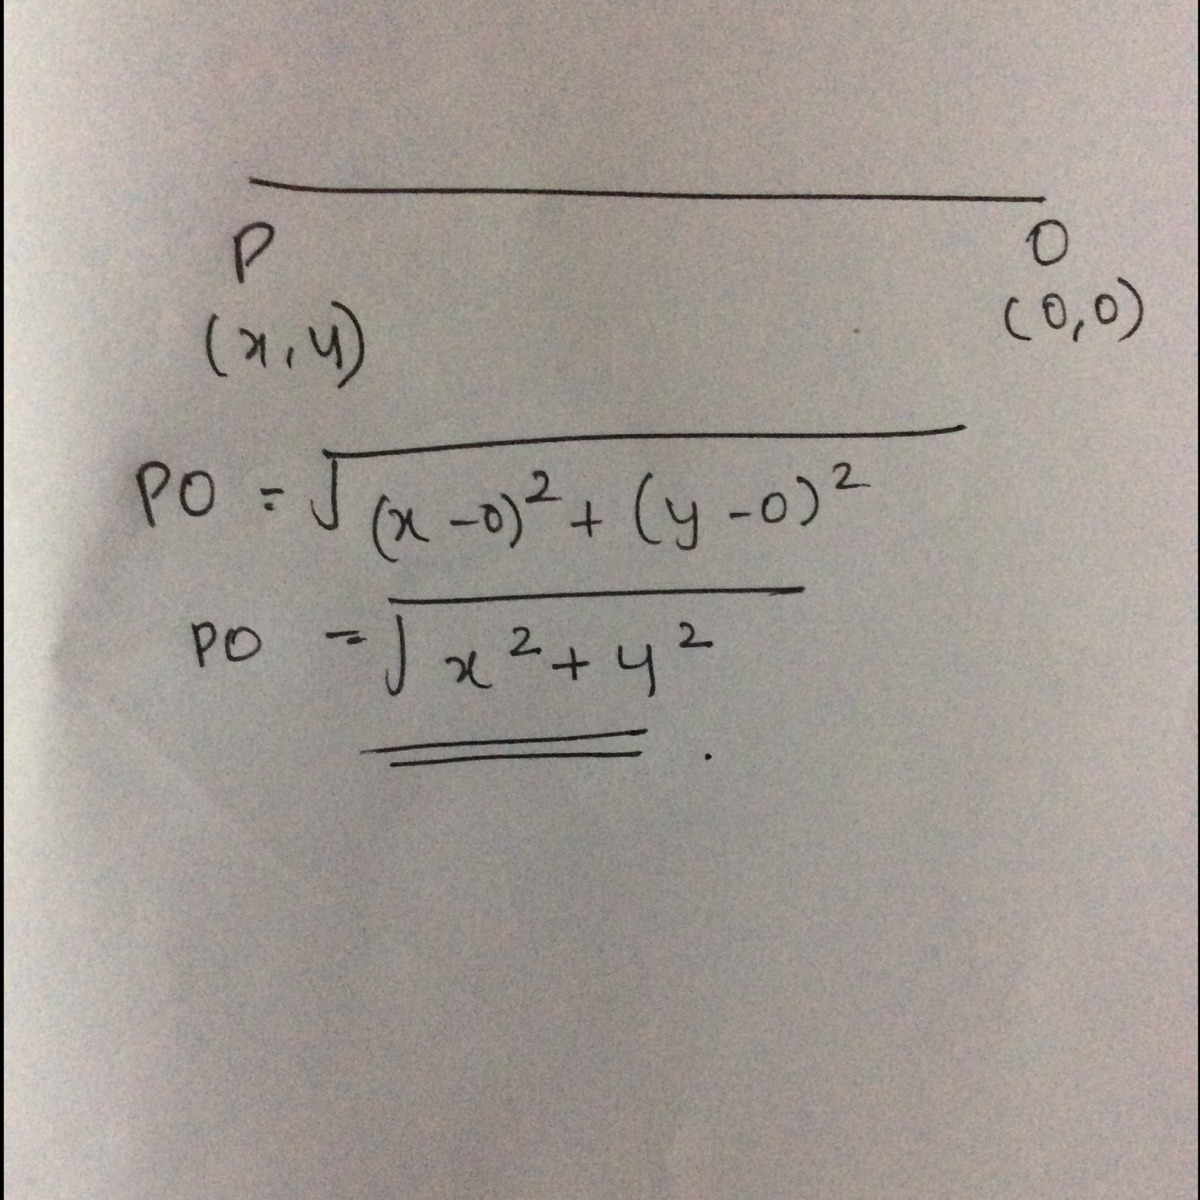 find the distance of a point p(x,y) from the origin - Brainly in